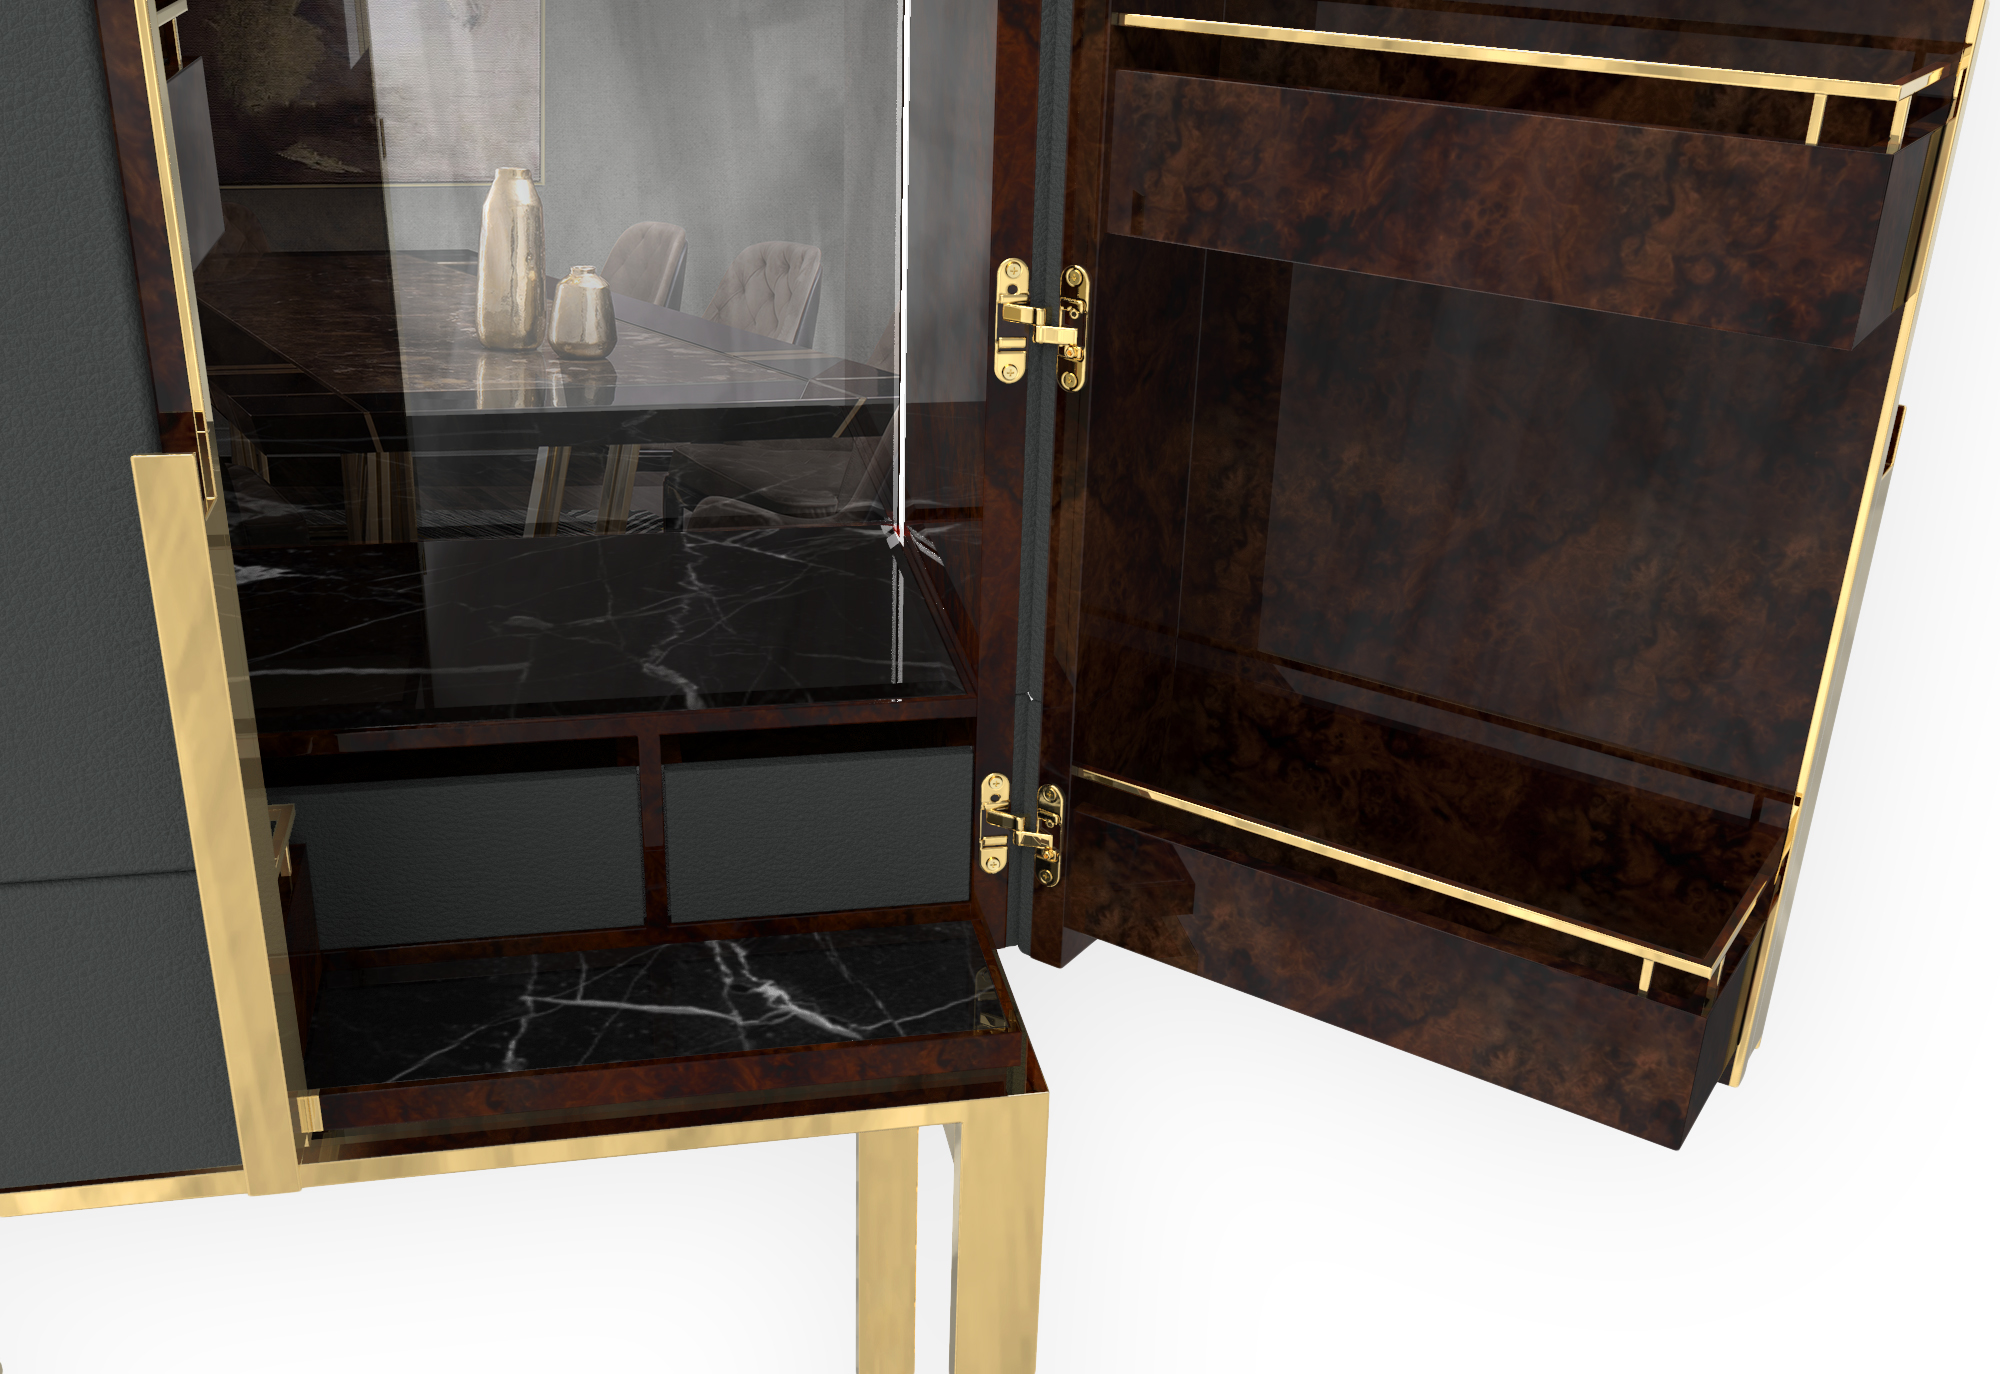 Luxury Design: Discover Our New Bar Cabinet